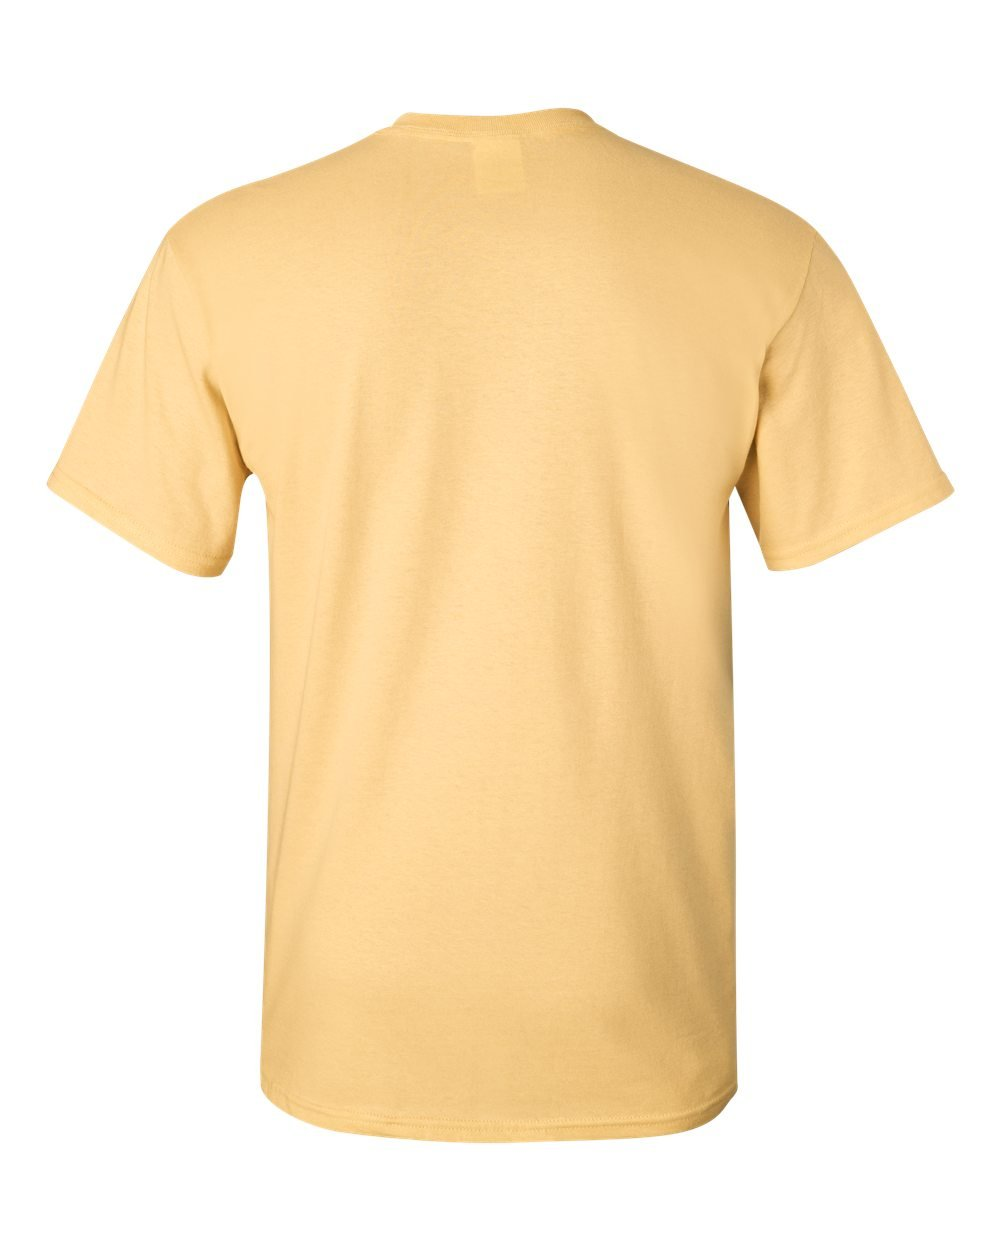 Gildan Youth Heavy Cotton T-Shirt - Yellow Haze - M